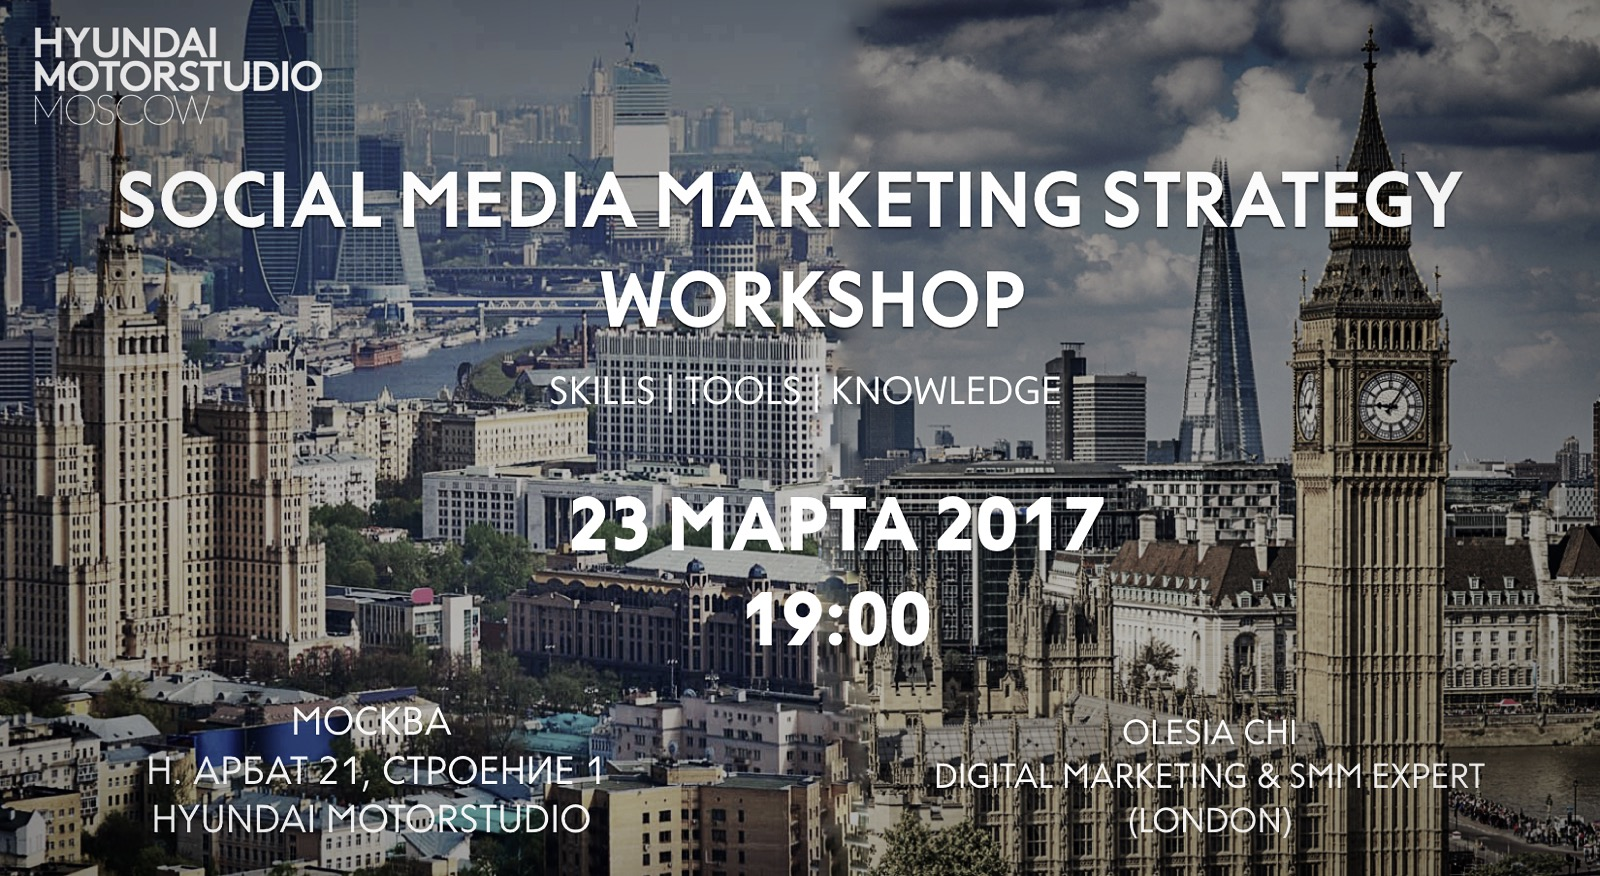 Social media marketing strategy workshop